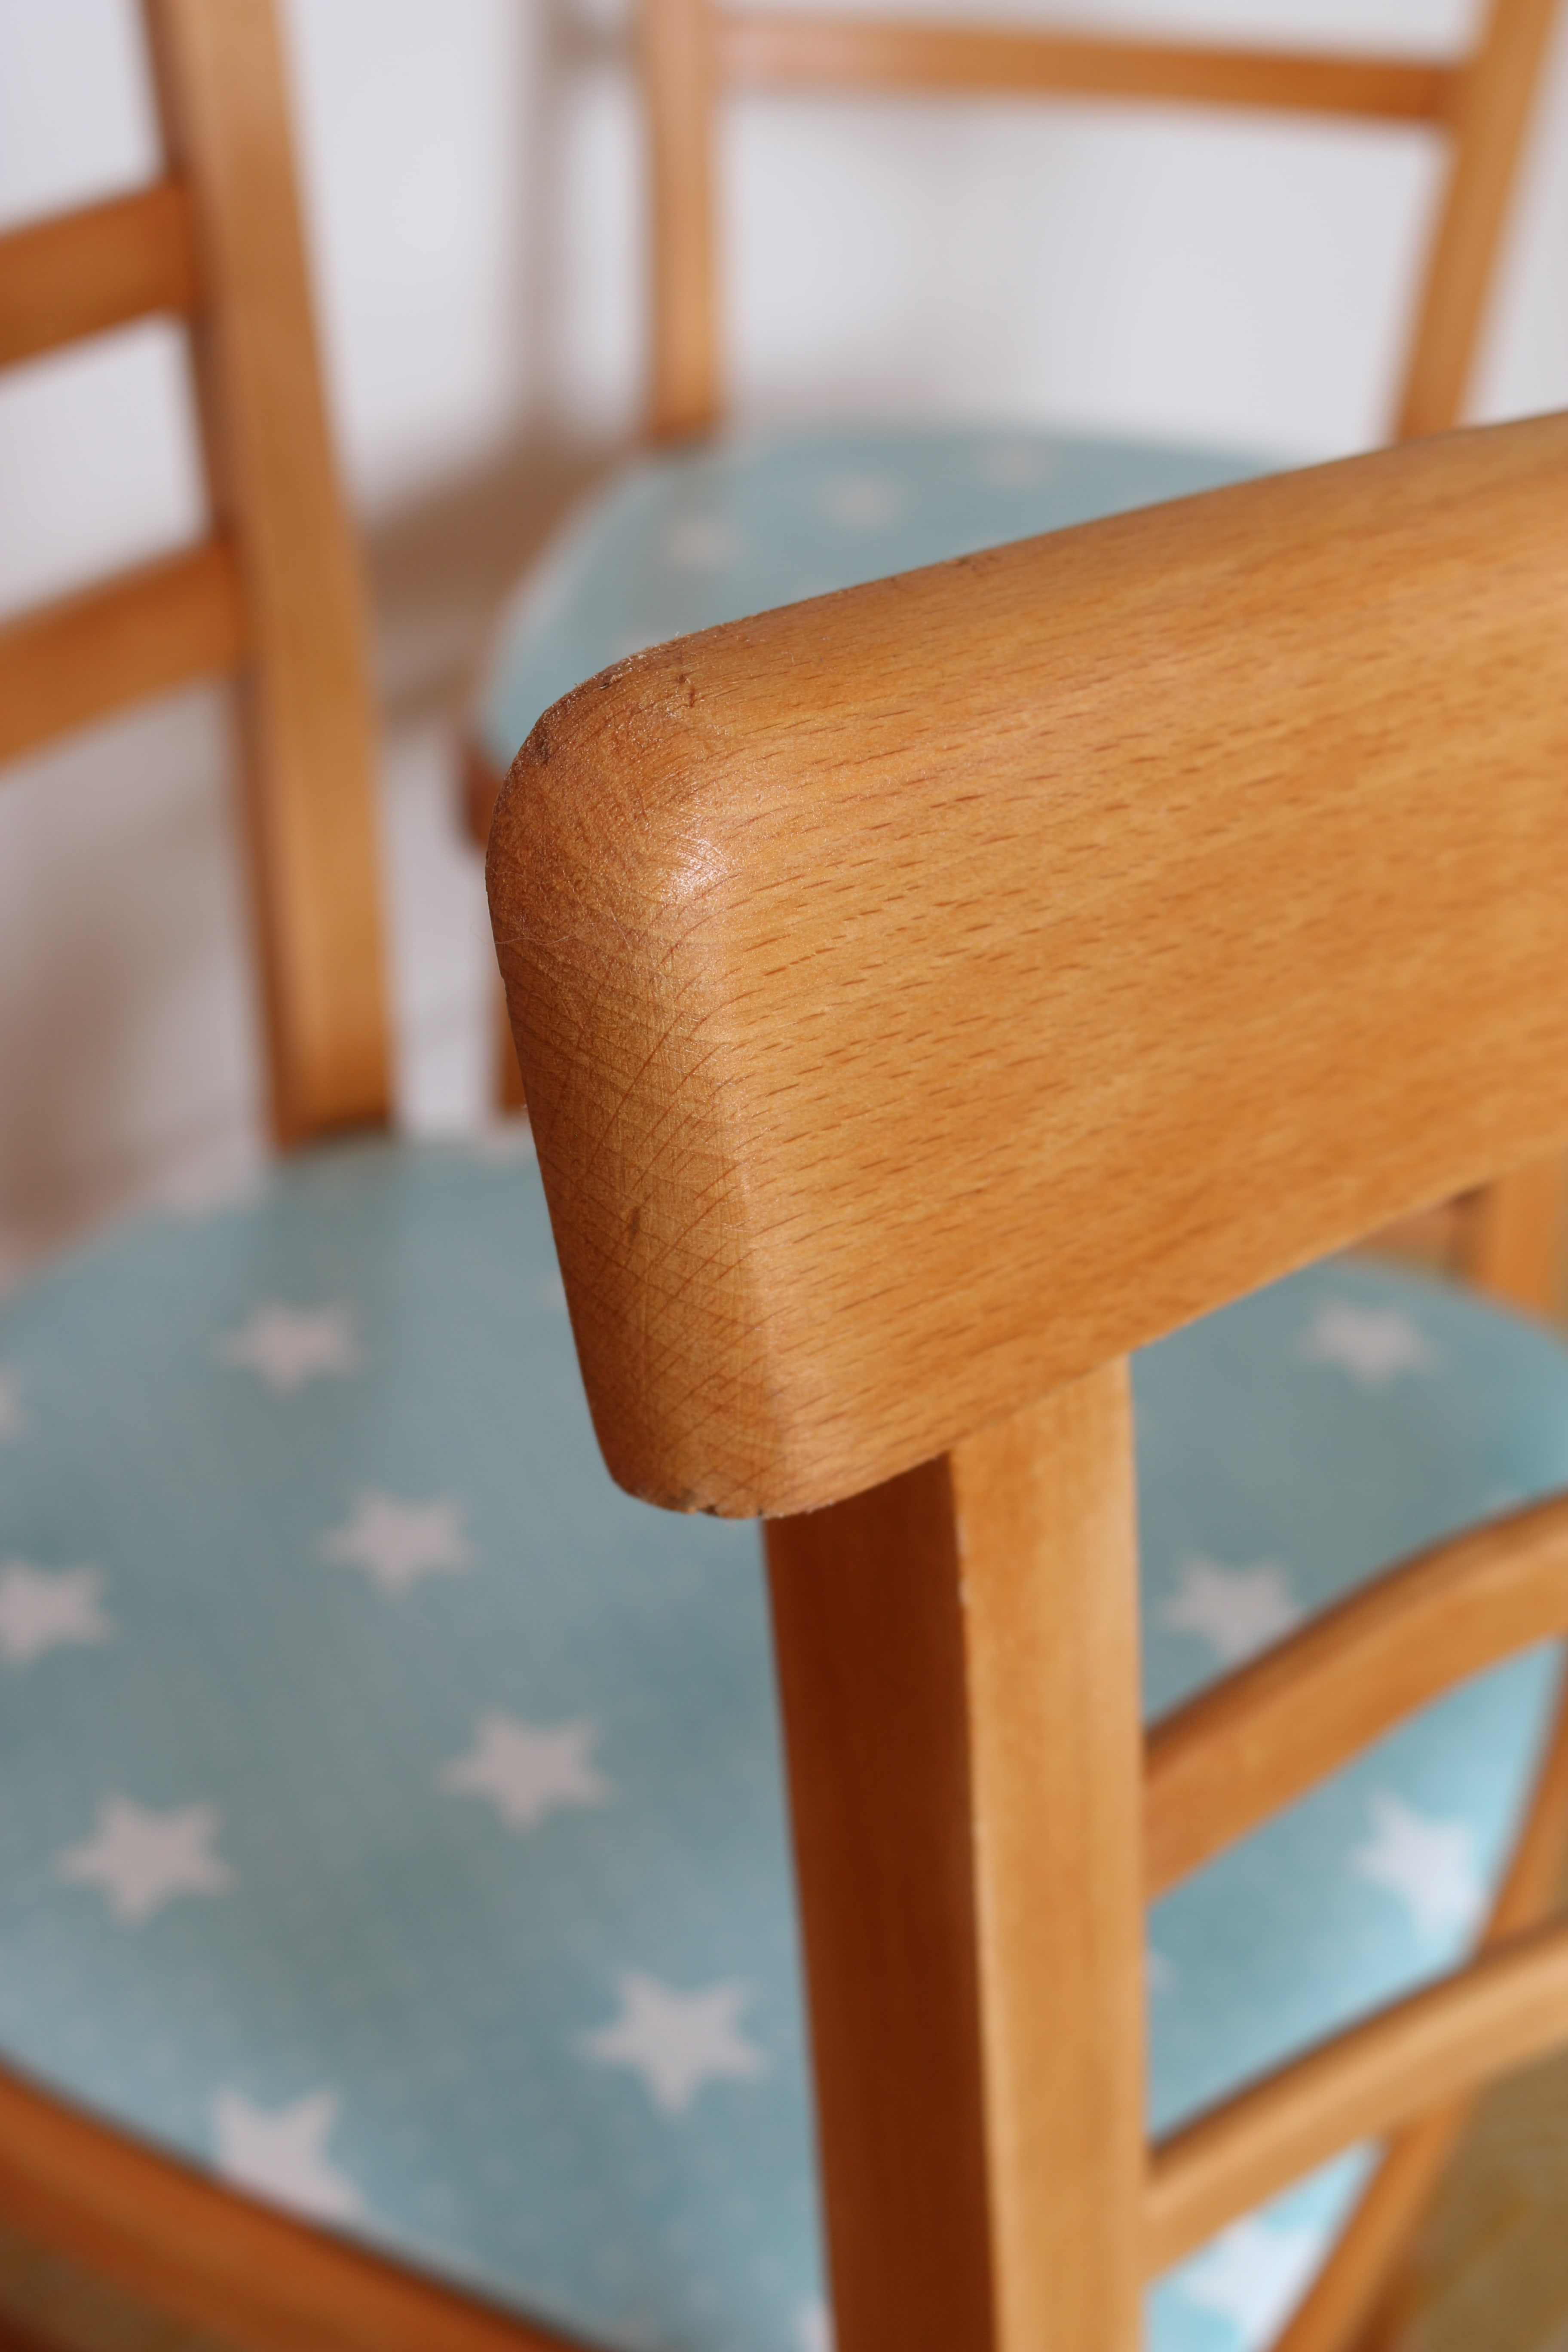 The Handy Mano ManoMano diy do it yourself Dining Chair Makeover Upholstered Chairs wooden upholster reupholster after